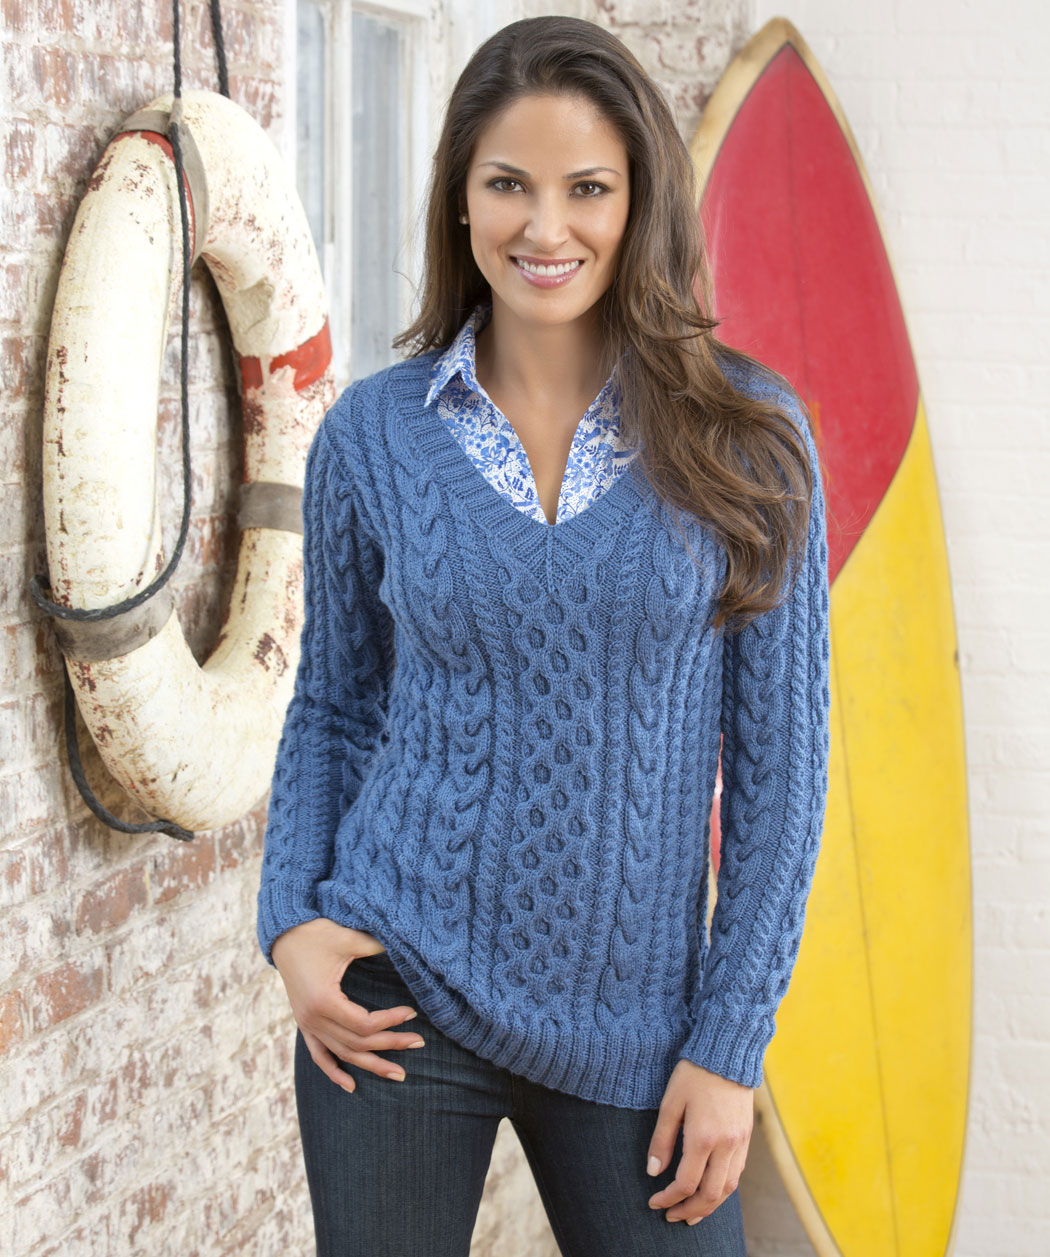 Jumper Patterns Knitting : Cable Knit Sweater Patterns A Knitting Blog